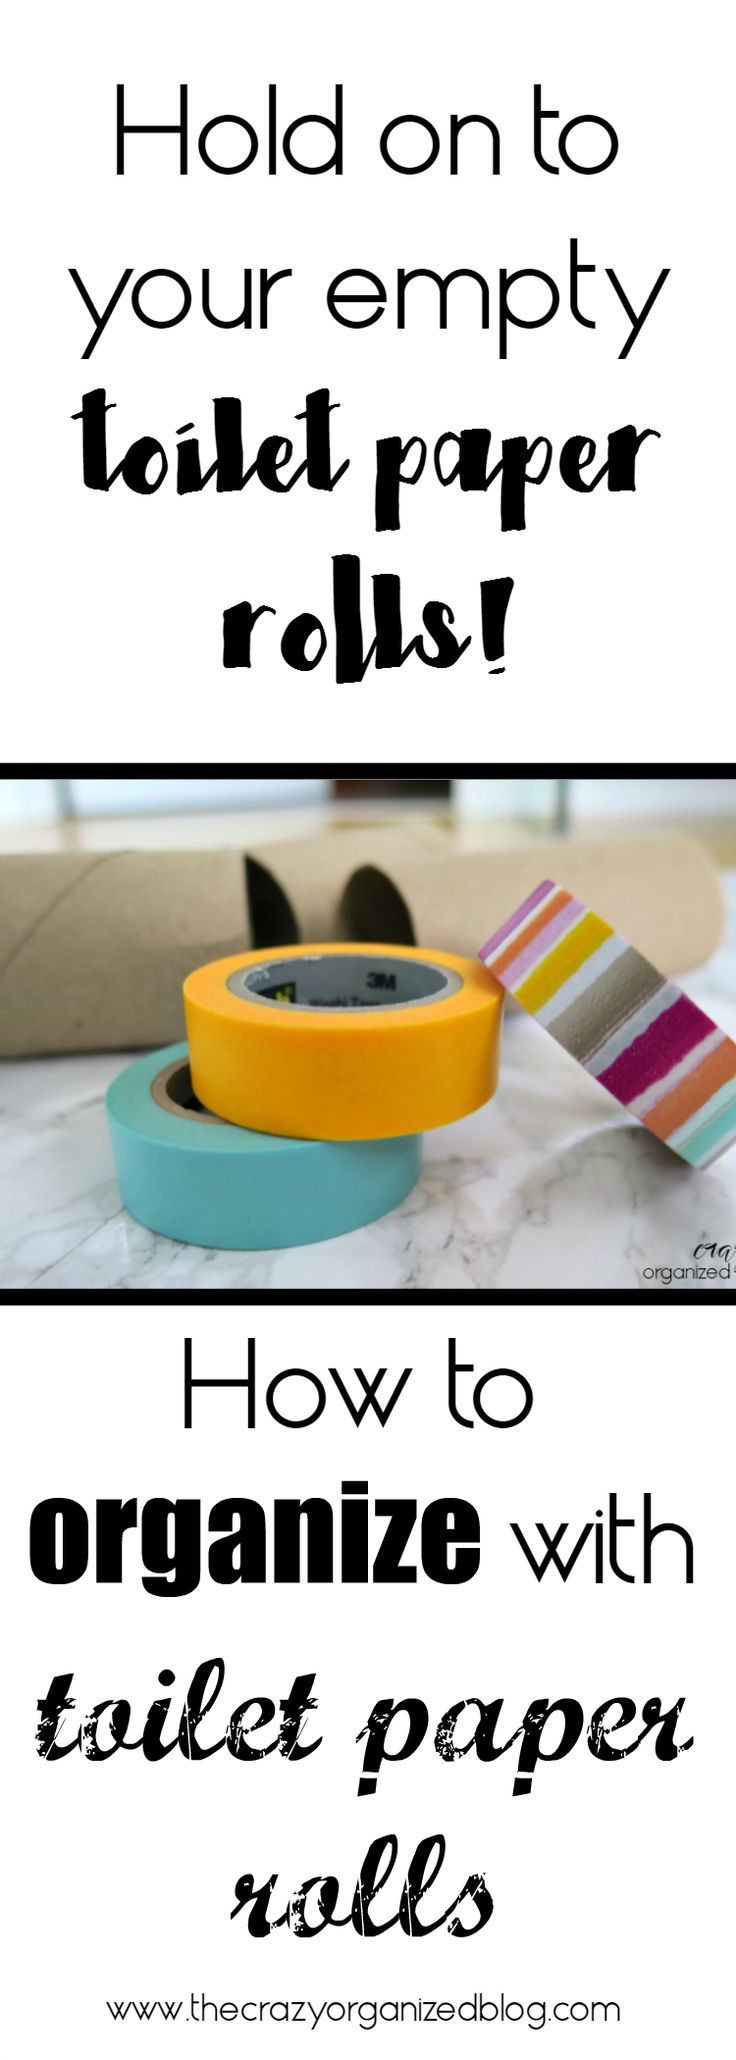 Hold on to those empty toilet paper rolls ... Yes, you can put them to use! ORGANIZE your home!